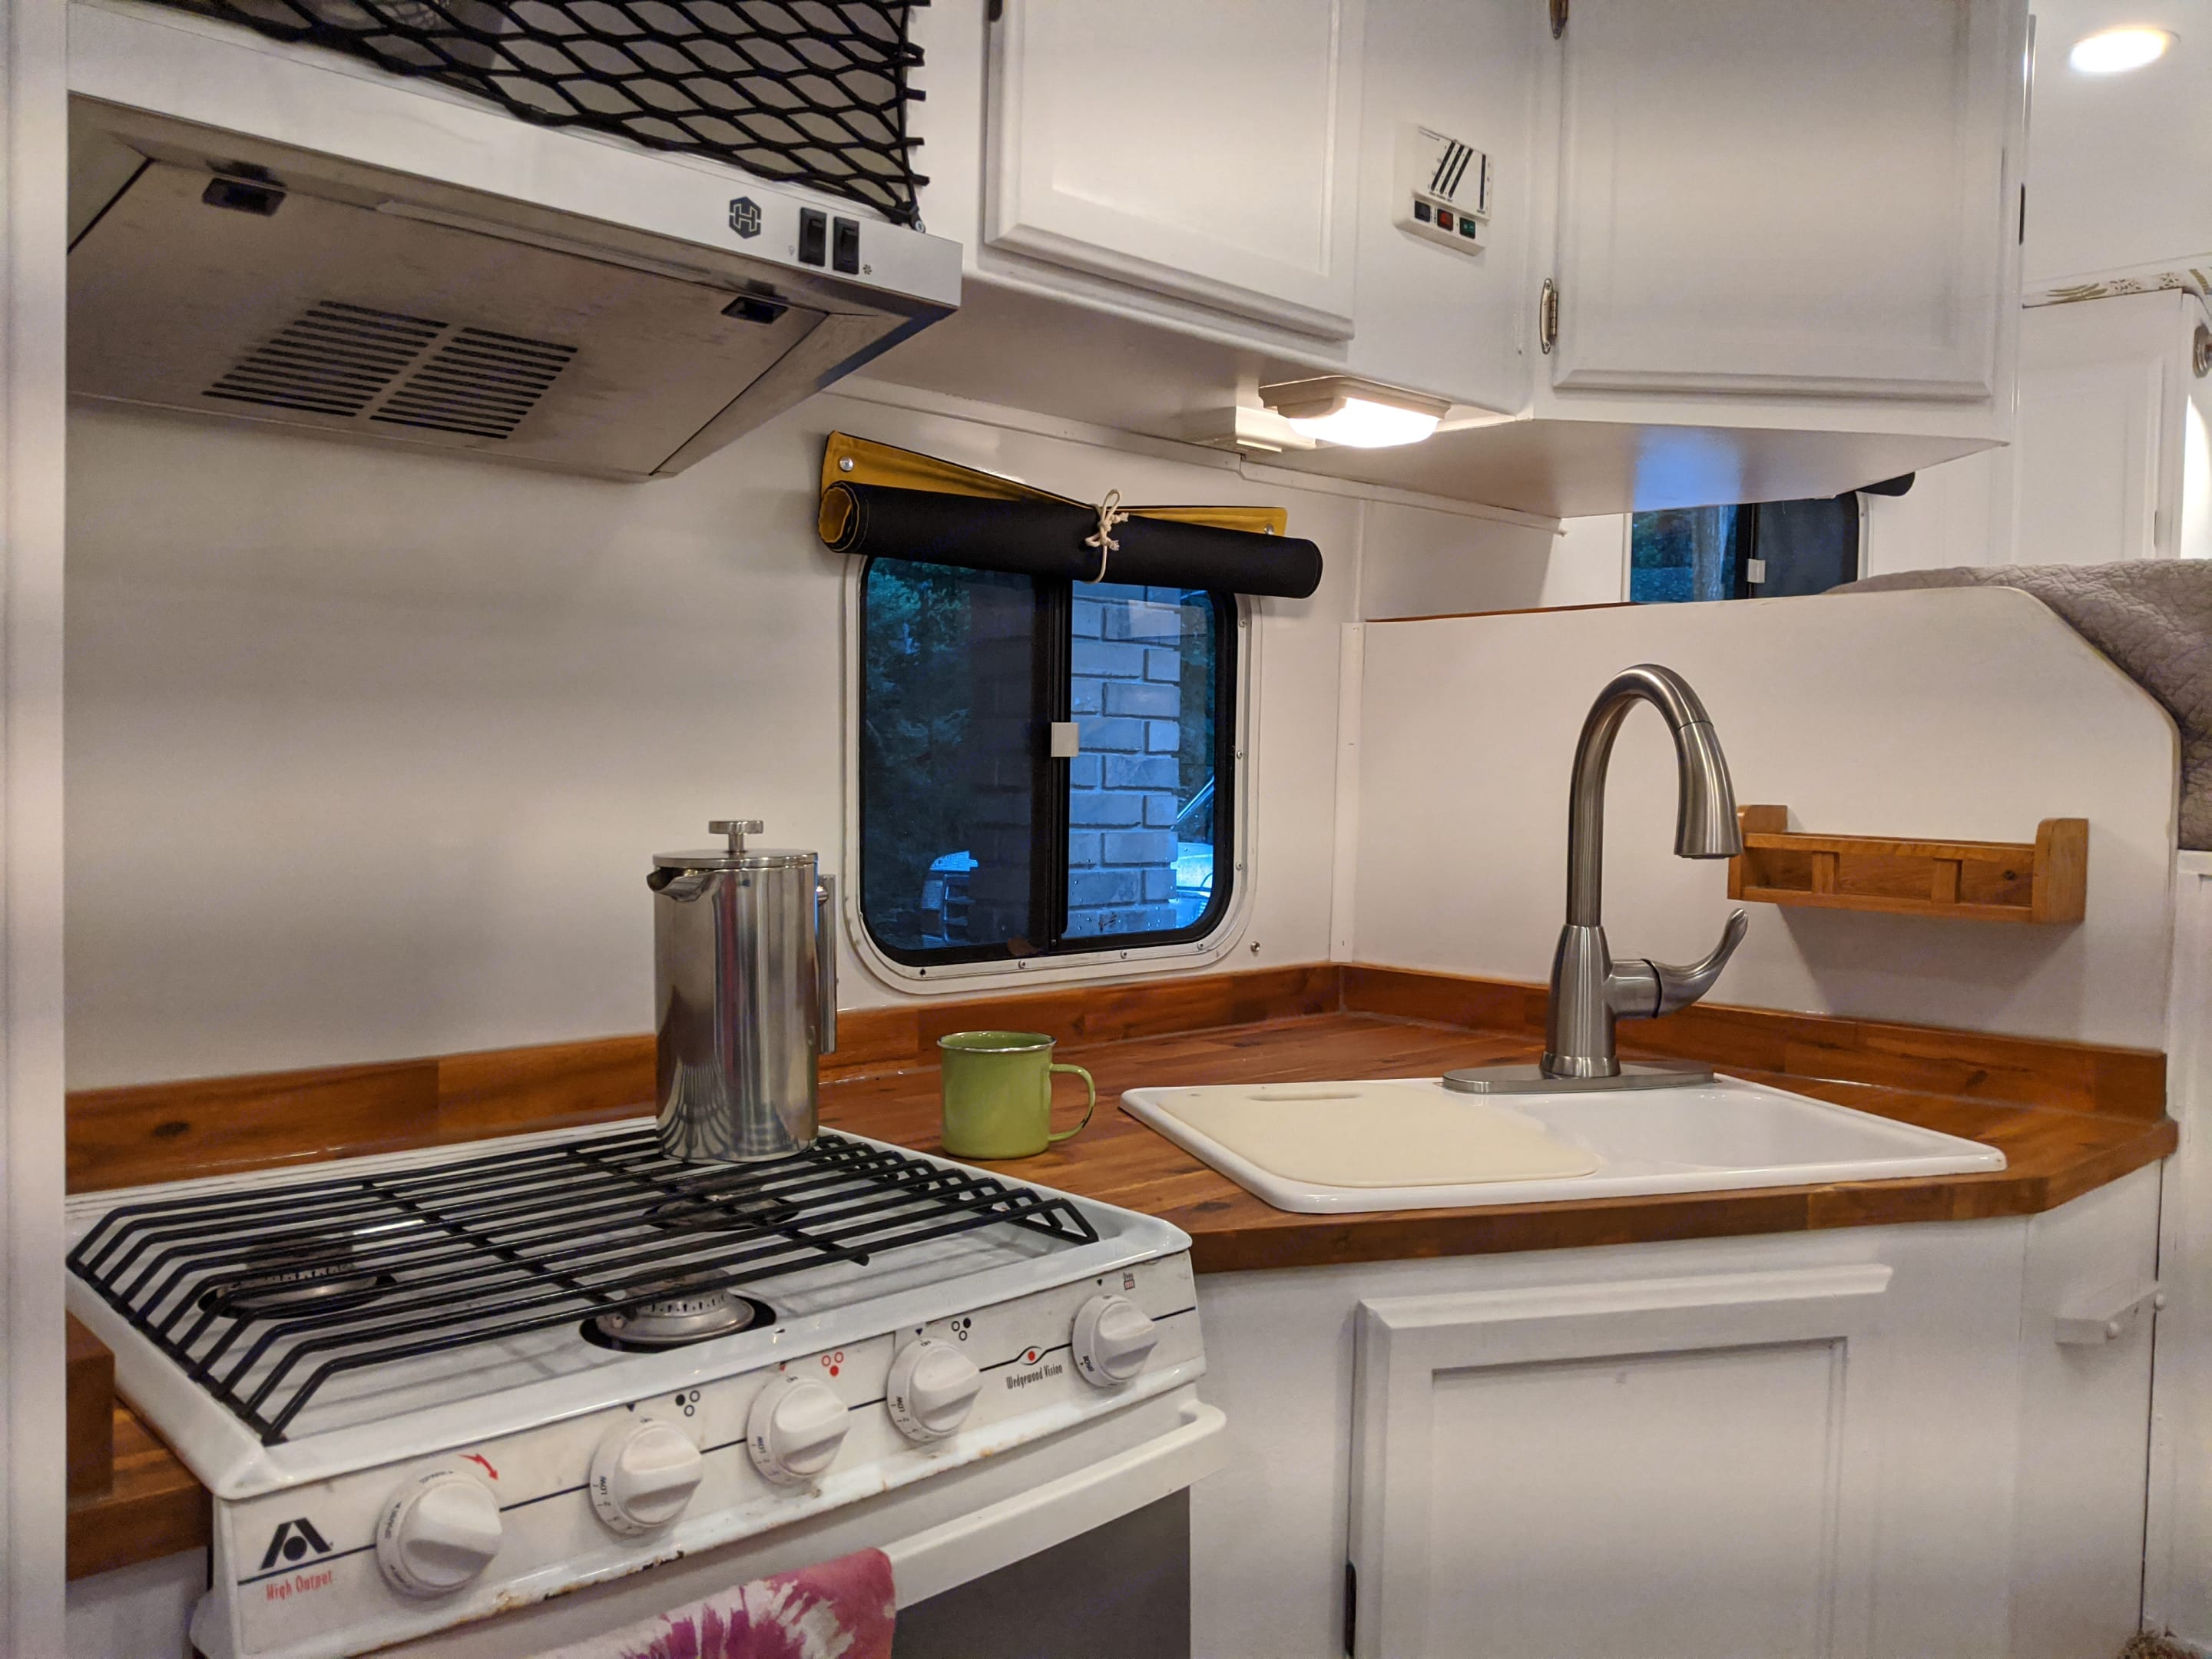 Updated kitchen with gas stove, oven, utensils, and cookware. Lance 915 2006